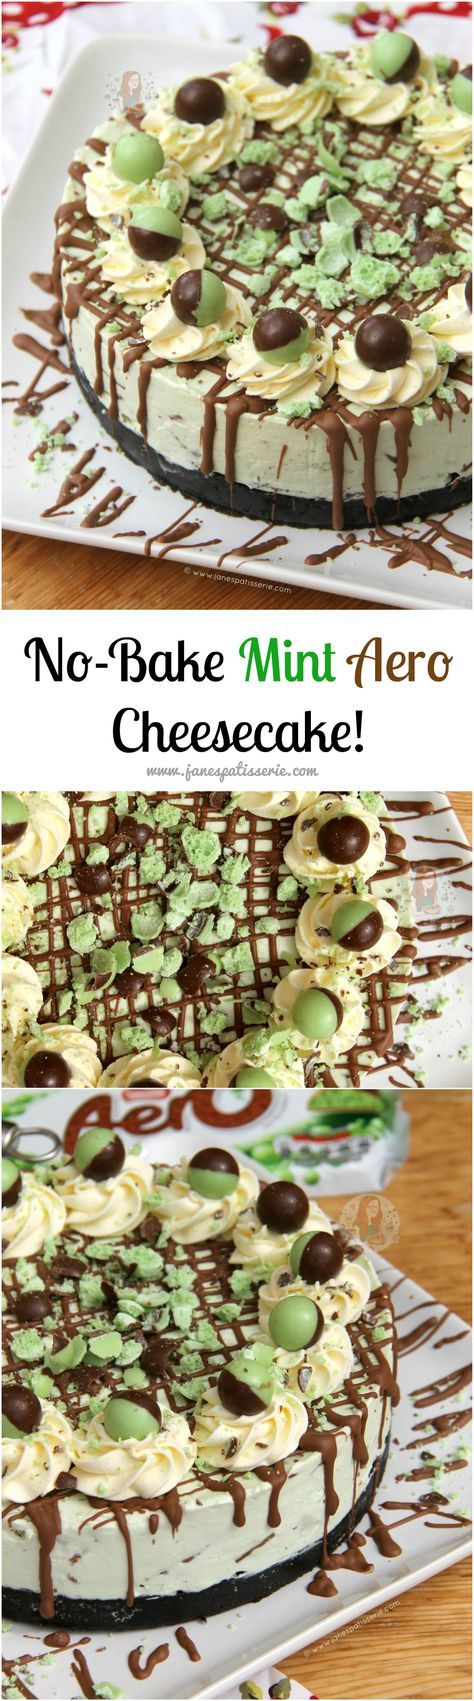 No-Bake Mint Aero Cheesecake!! ❤️ A Creamy, Sweet, and Delicious No-Bake Mint Aero Cheesecake. Mint Oreo base, Mint Aero Cheesecake filling, and even more Mint!